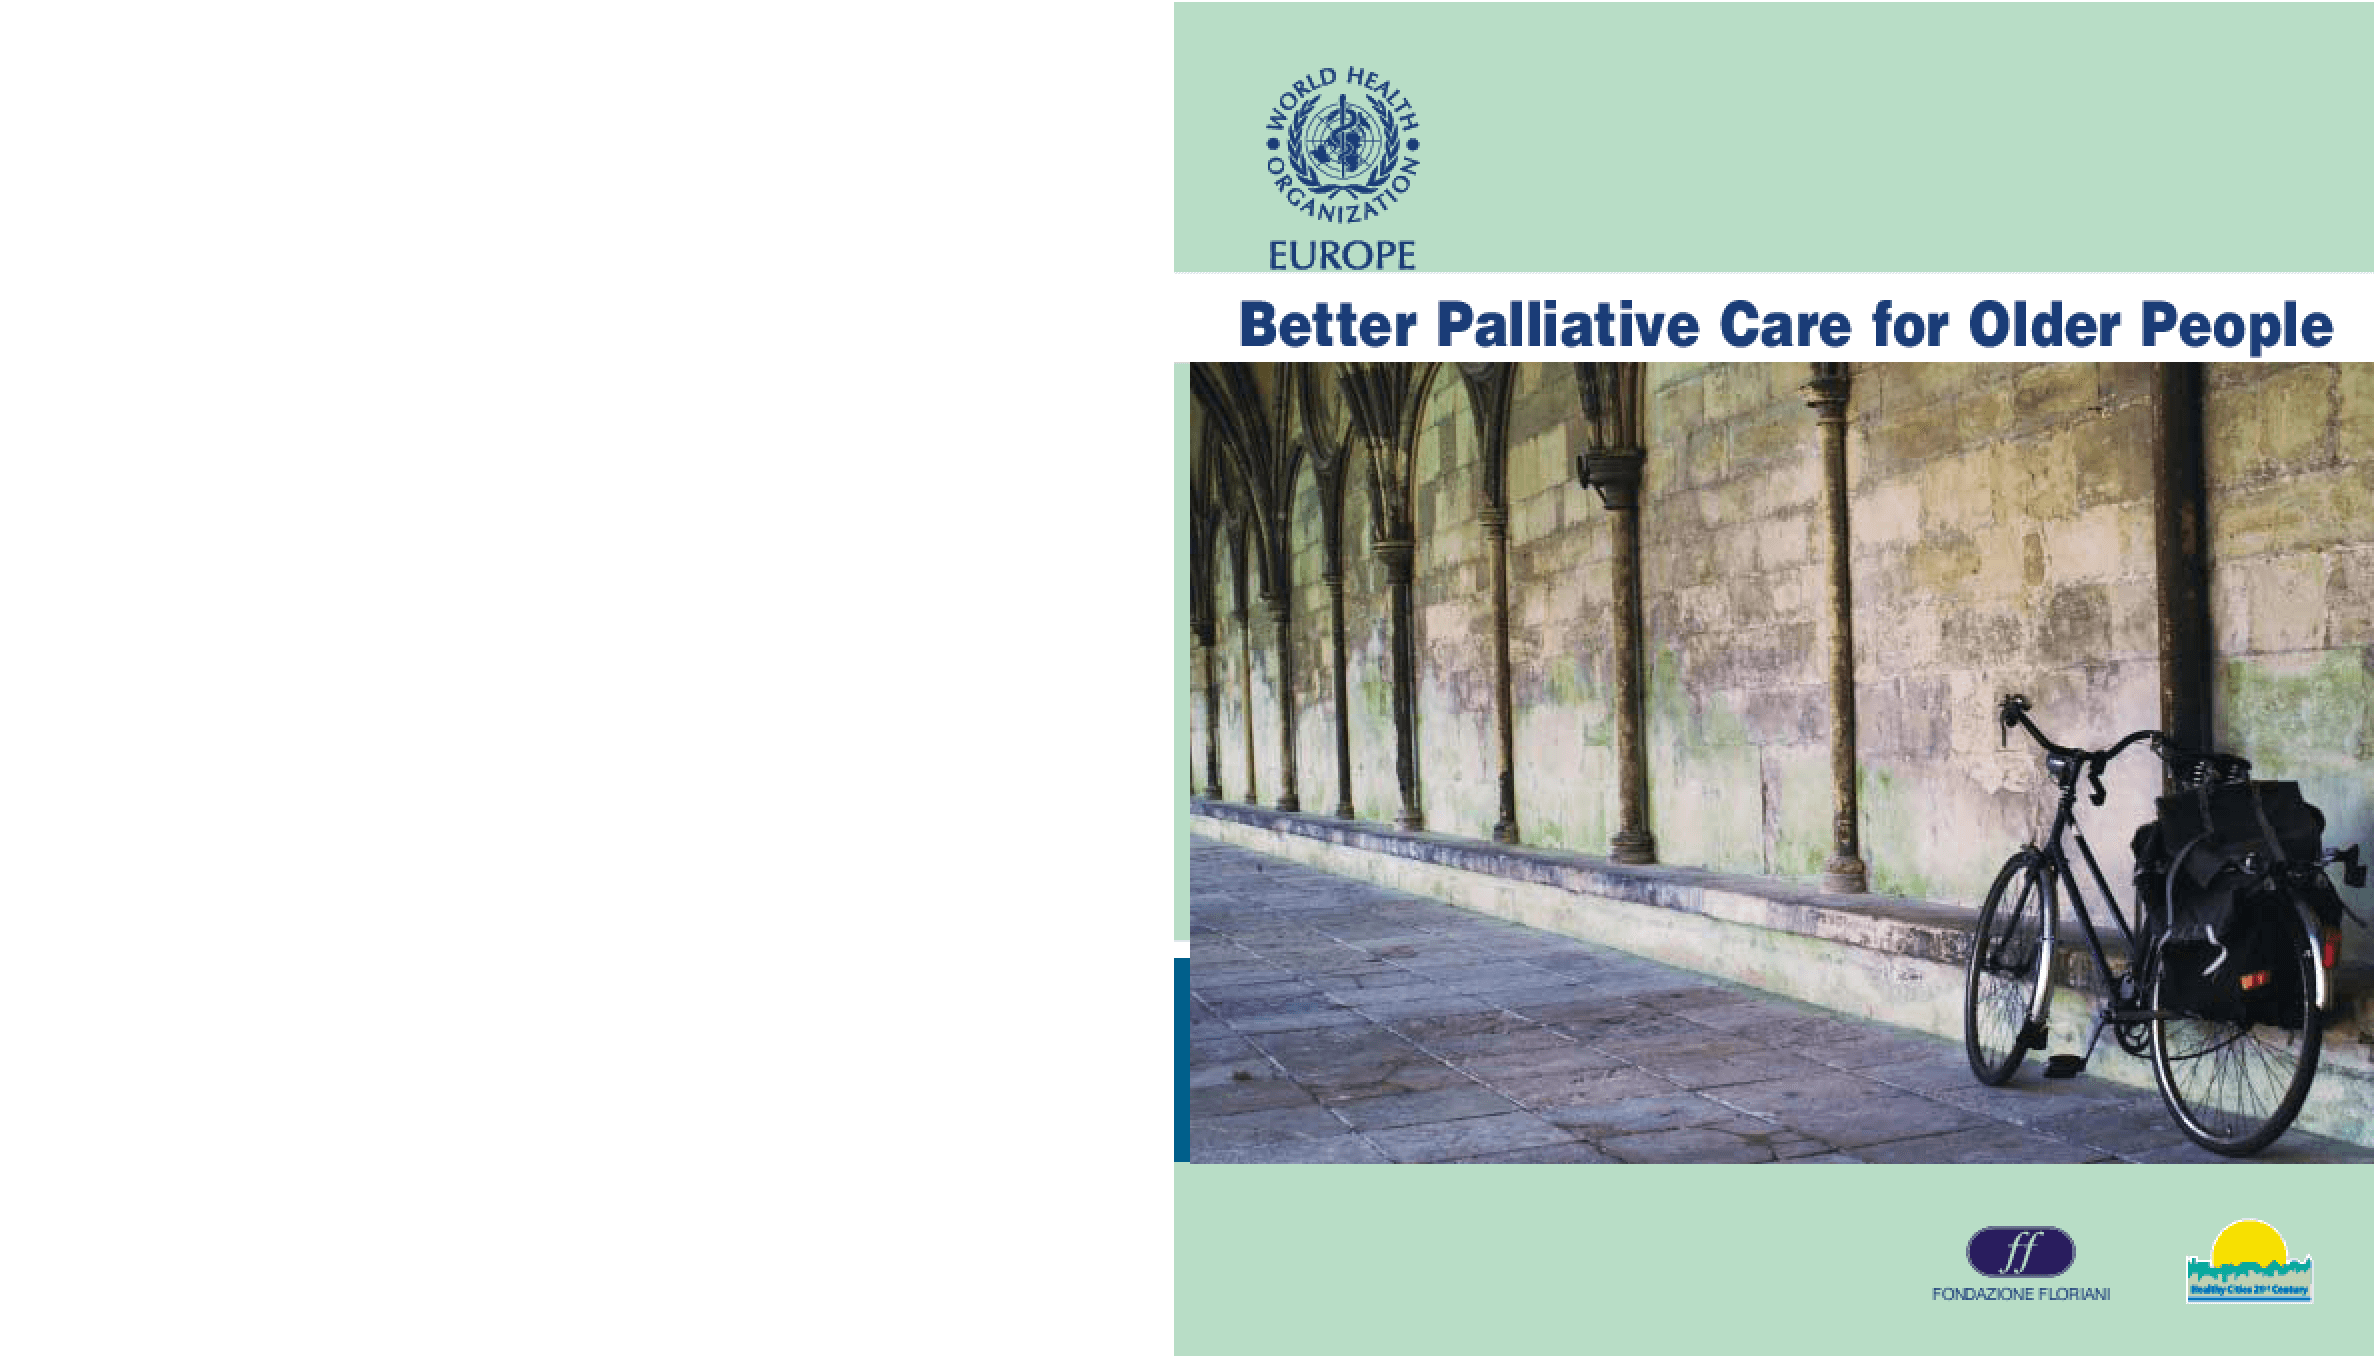 Better Palliative Care for Older People